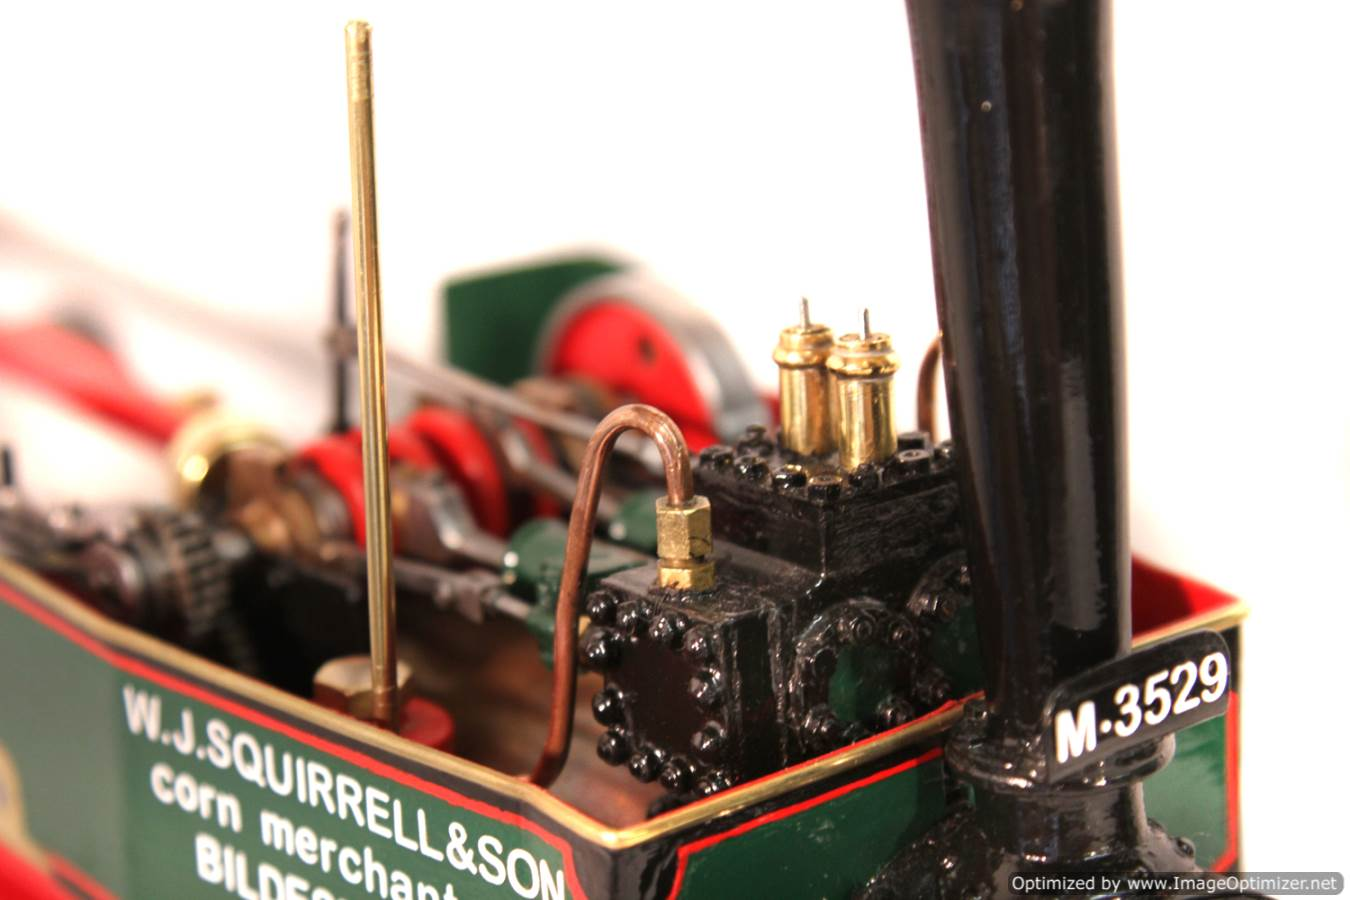 test 1 inch Foden Lorry Live Steam Locomotive for sale 14 Optimized